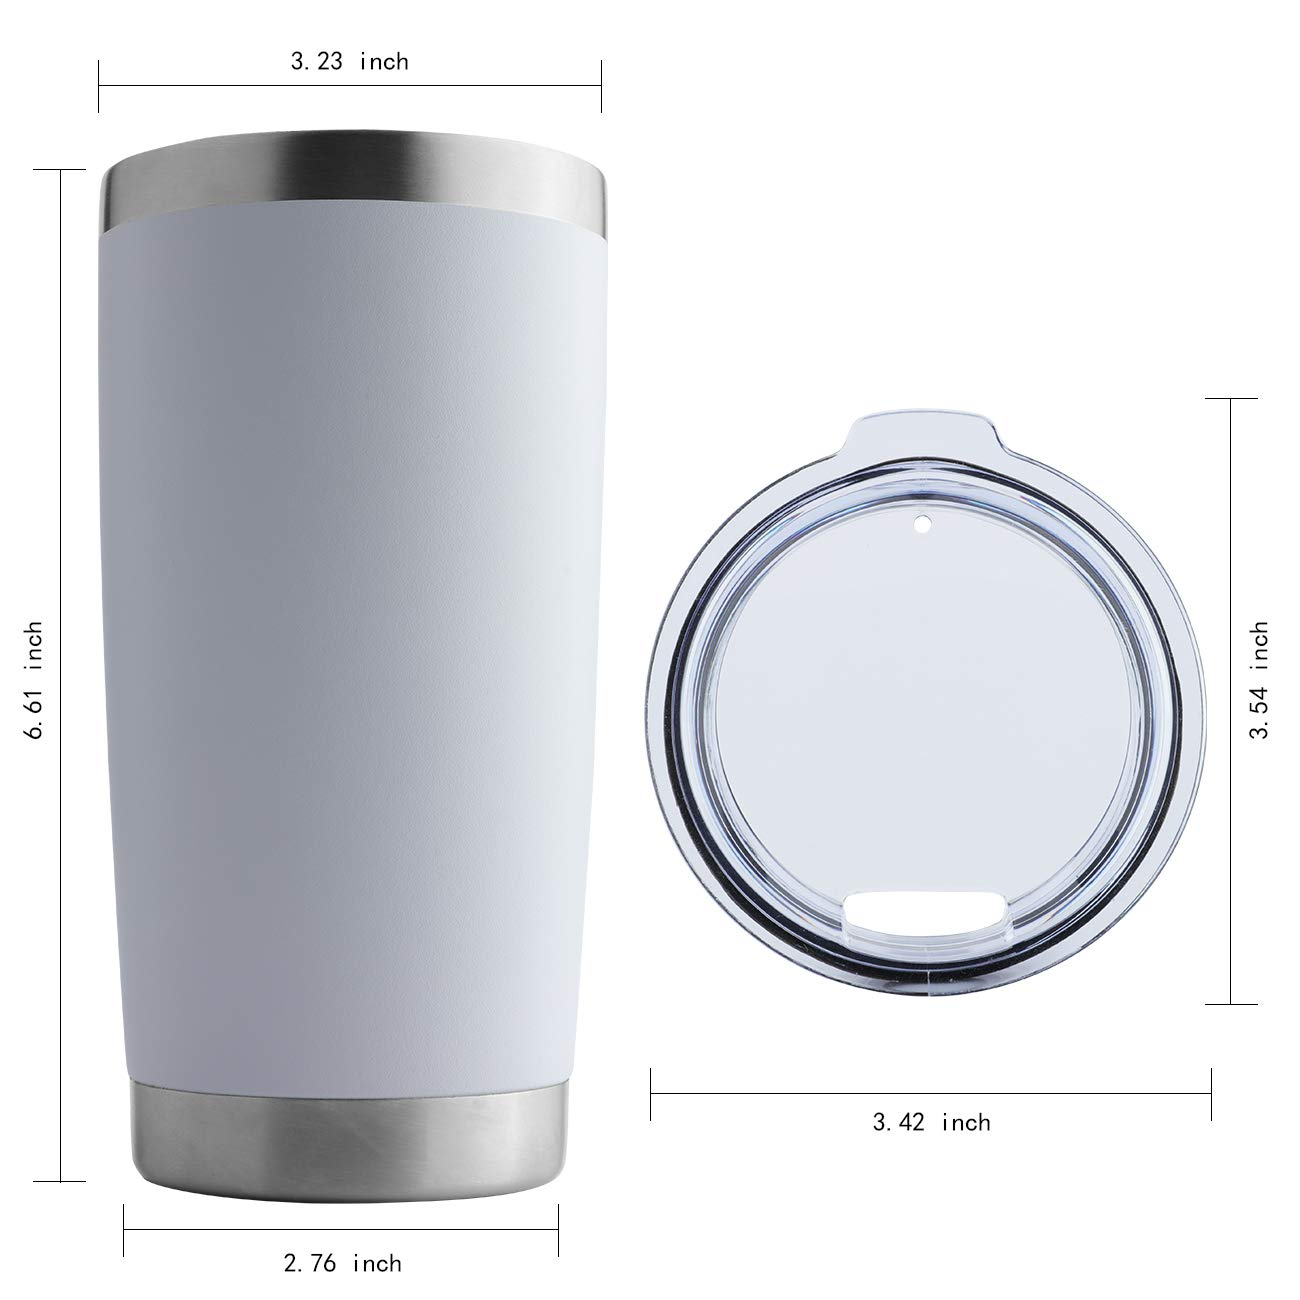 DOMICARE 20oz Stainless Steel Tumbler with Lid, Double Wall Vacuum Insulated Travel Mug, Durable Powder Coated Insulated Coffee Cup, 4 Pack, White by DOMICARE (Image #4)